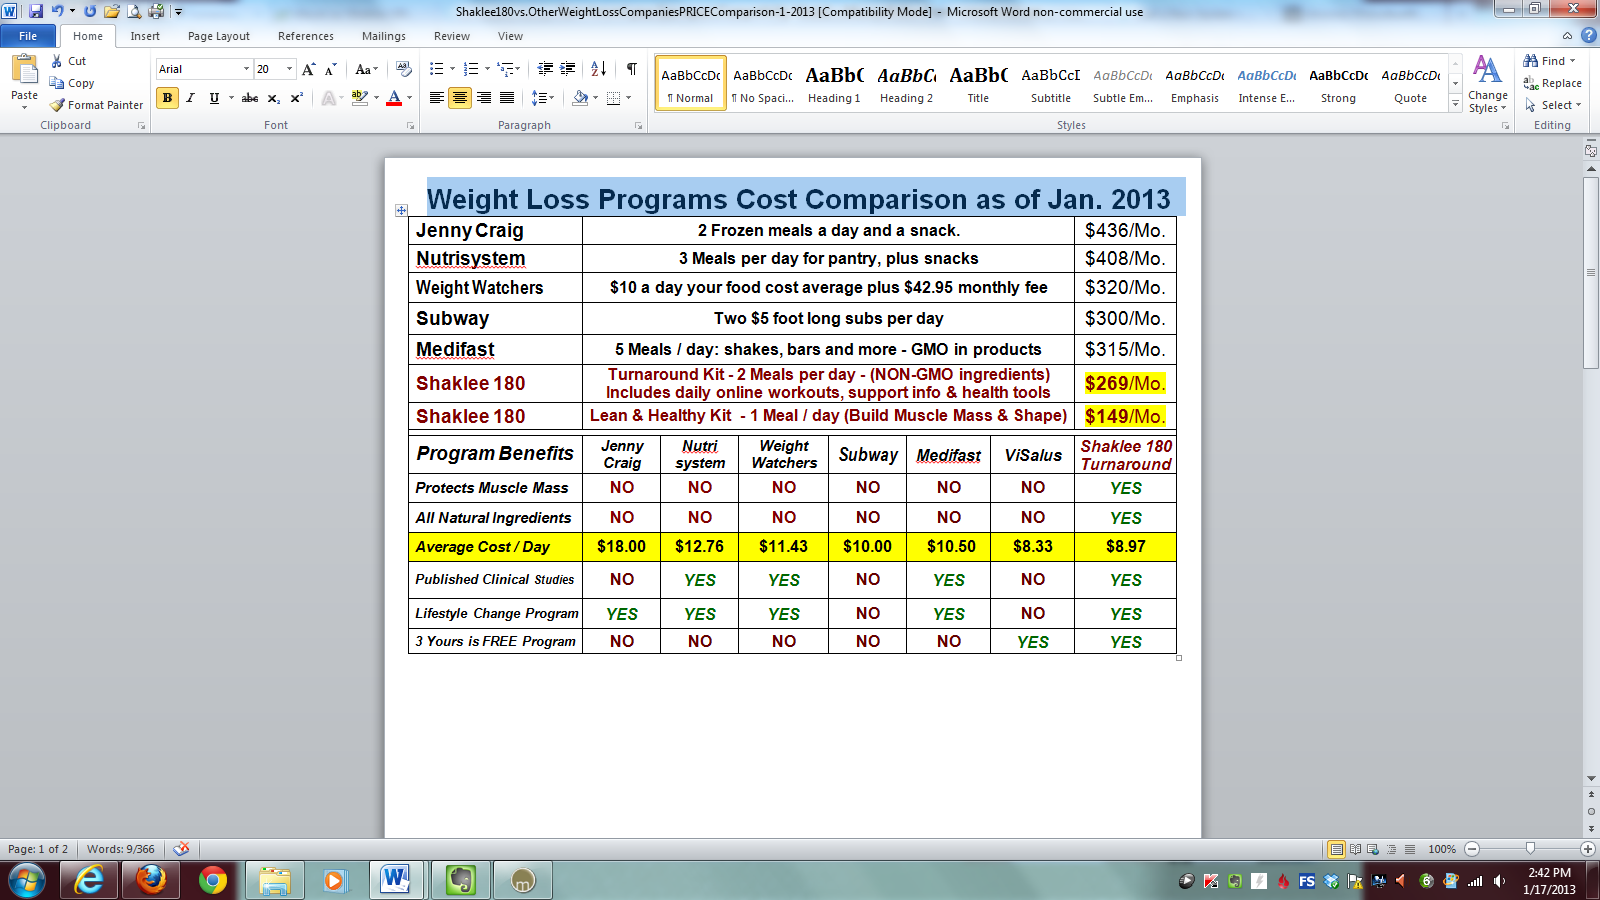 Weight loss cost comparison